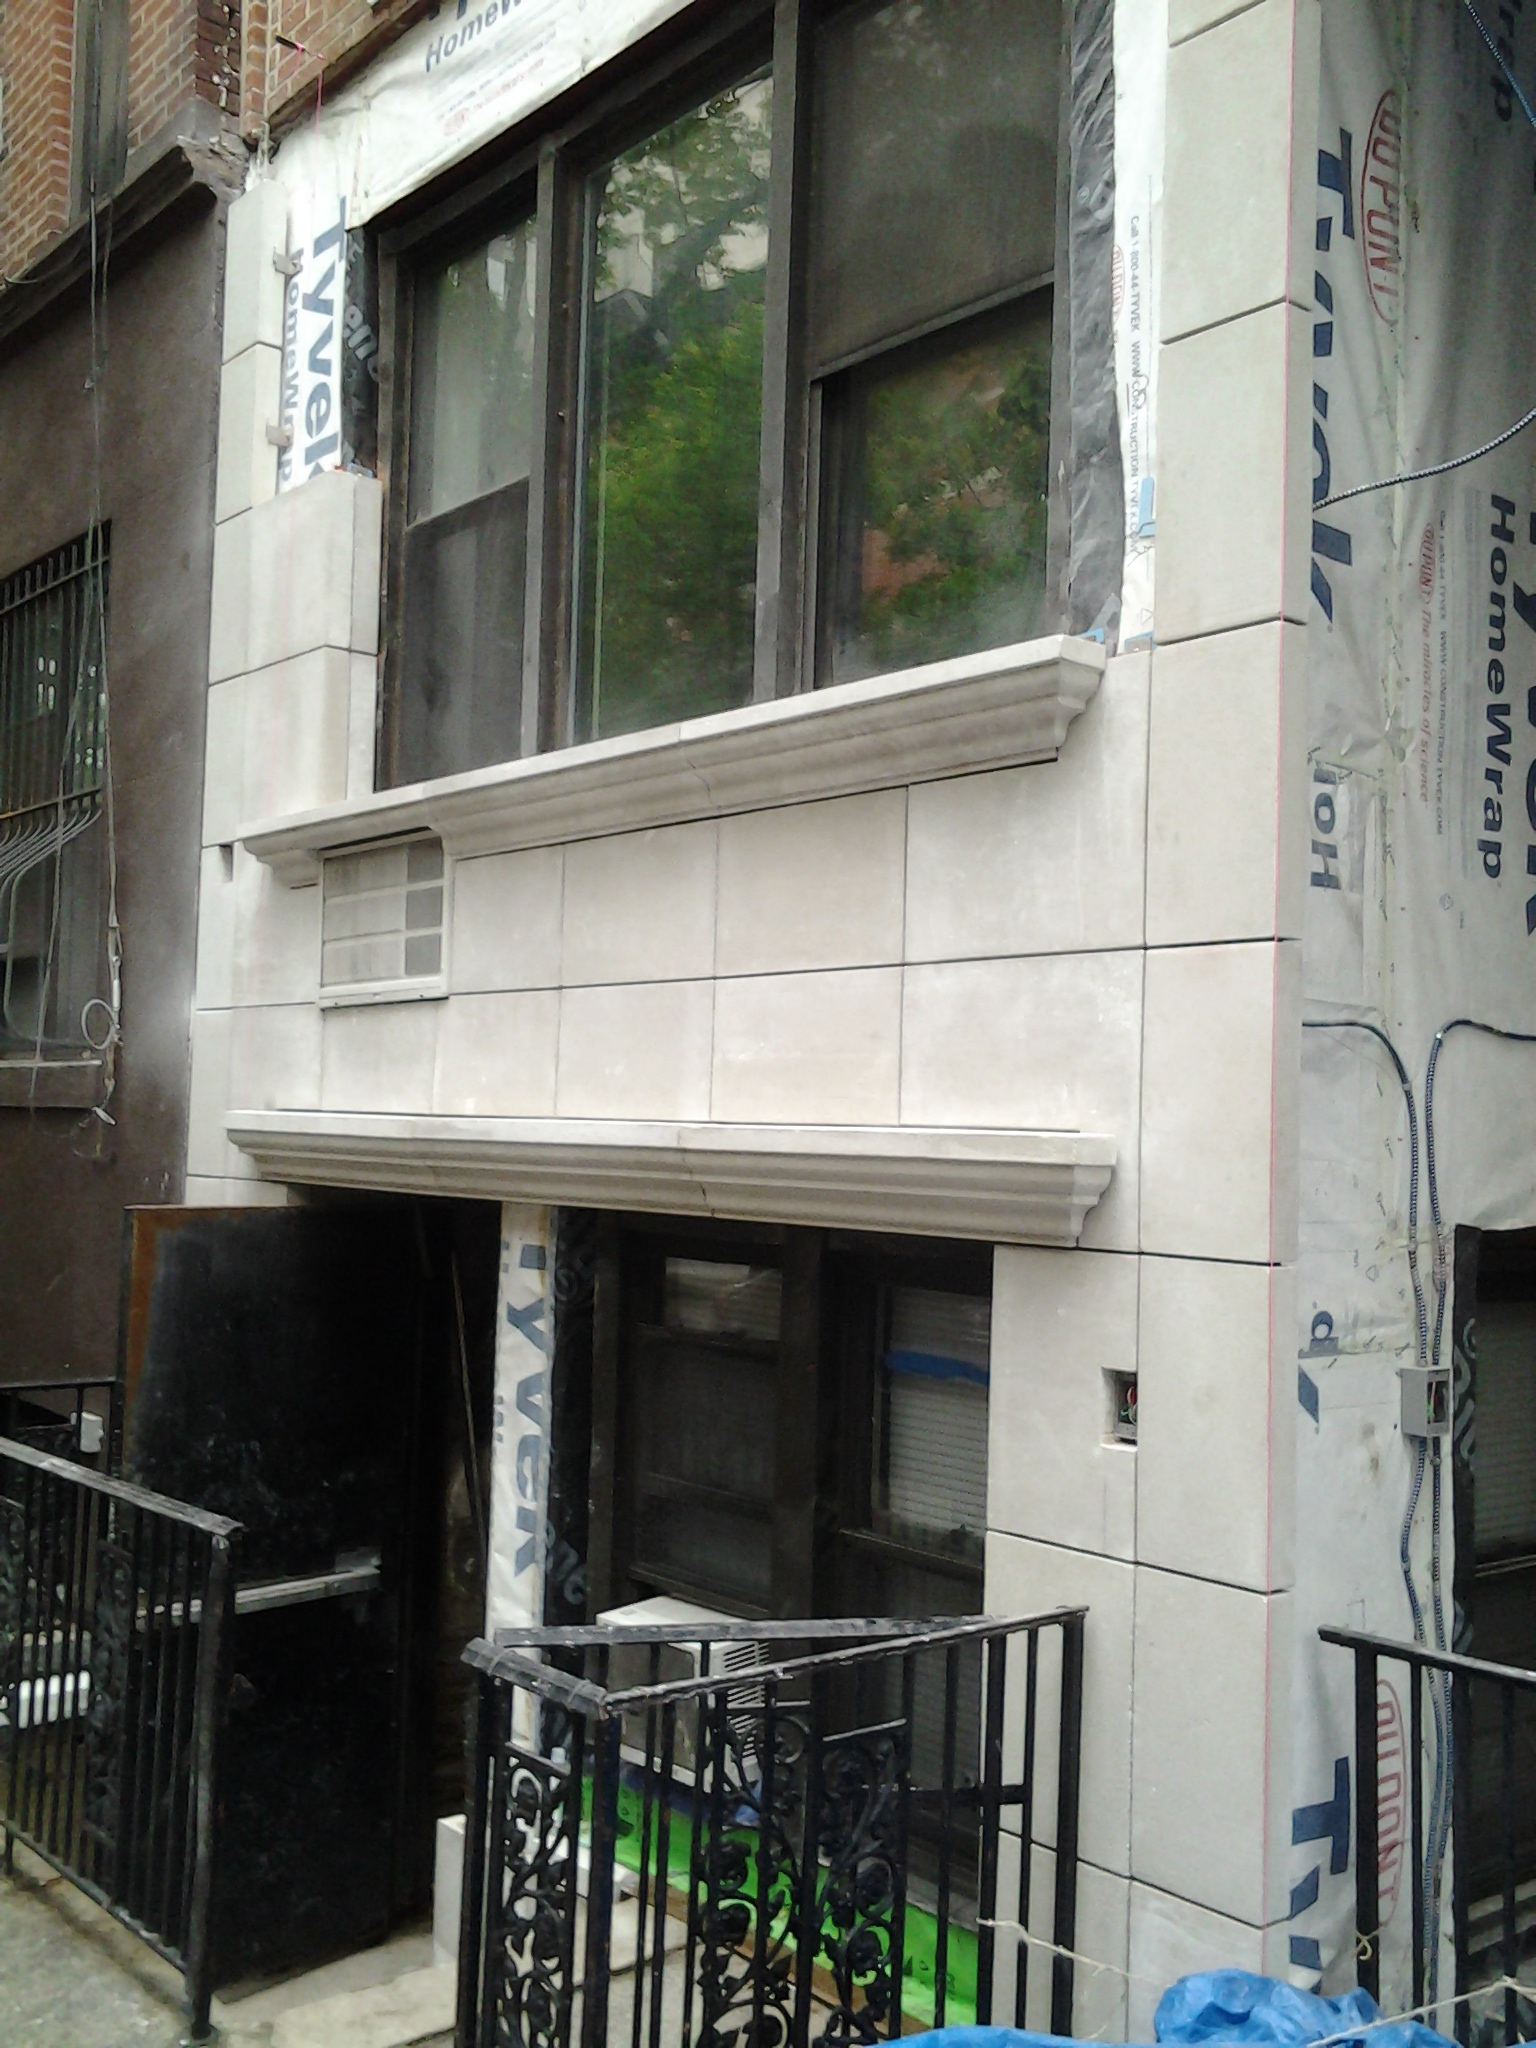 444 East 87th St.